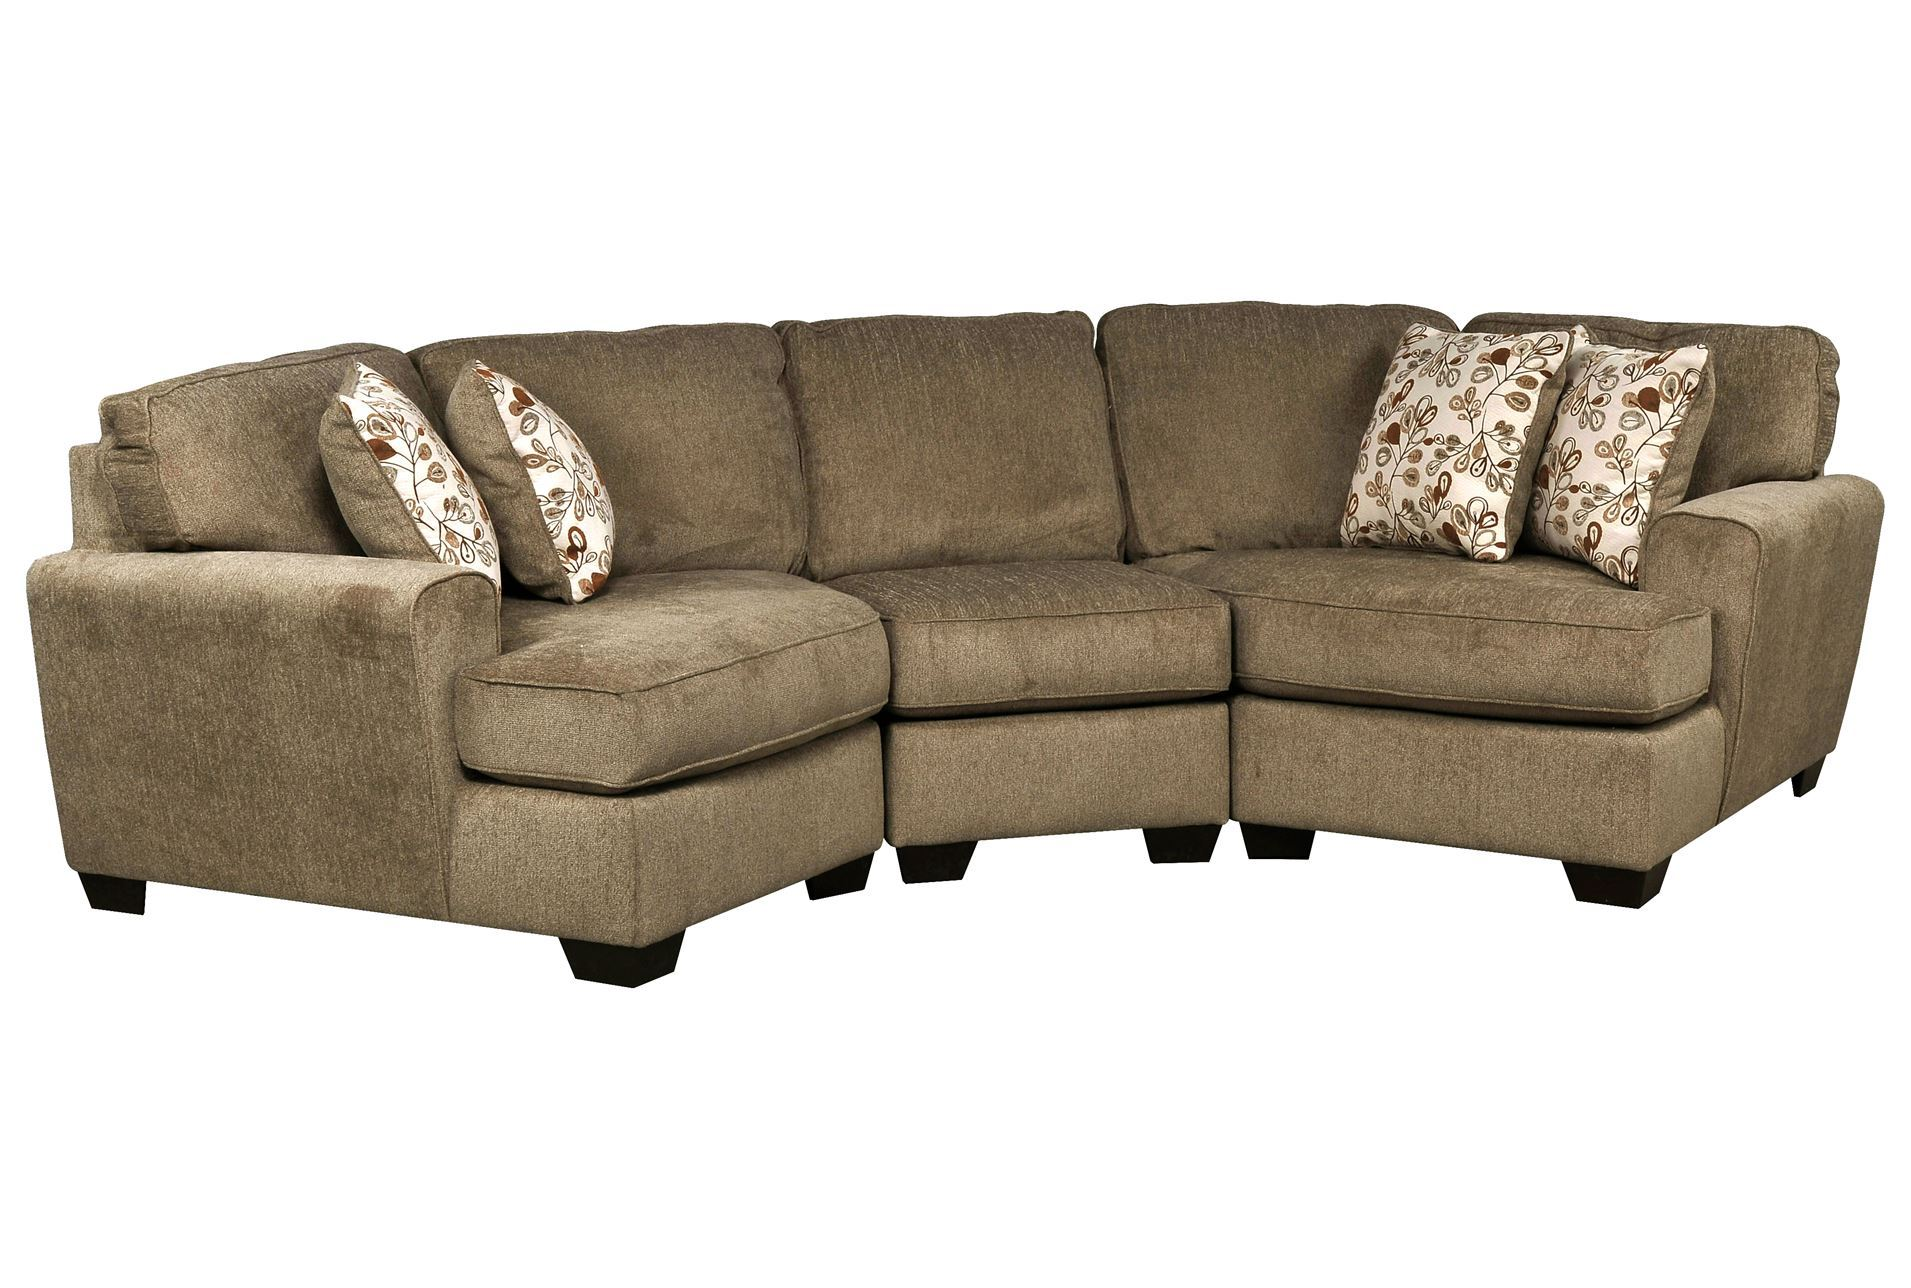 Chic sofa sectionals for home interior design with leather sectional sofa and sectional sleeper sofa